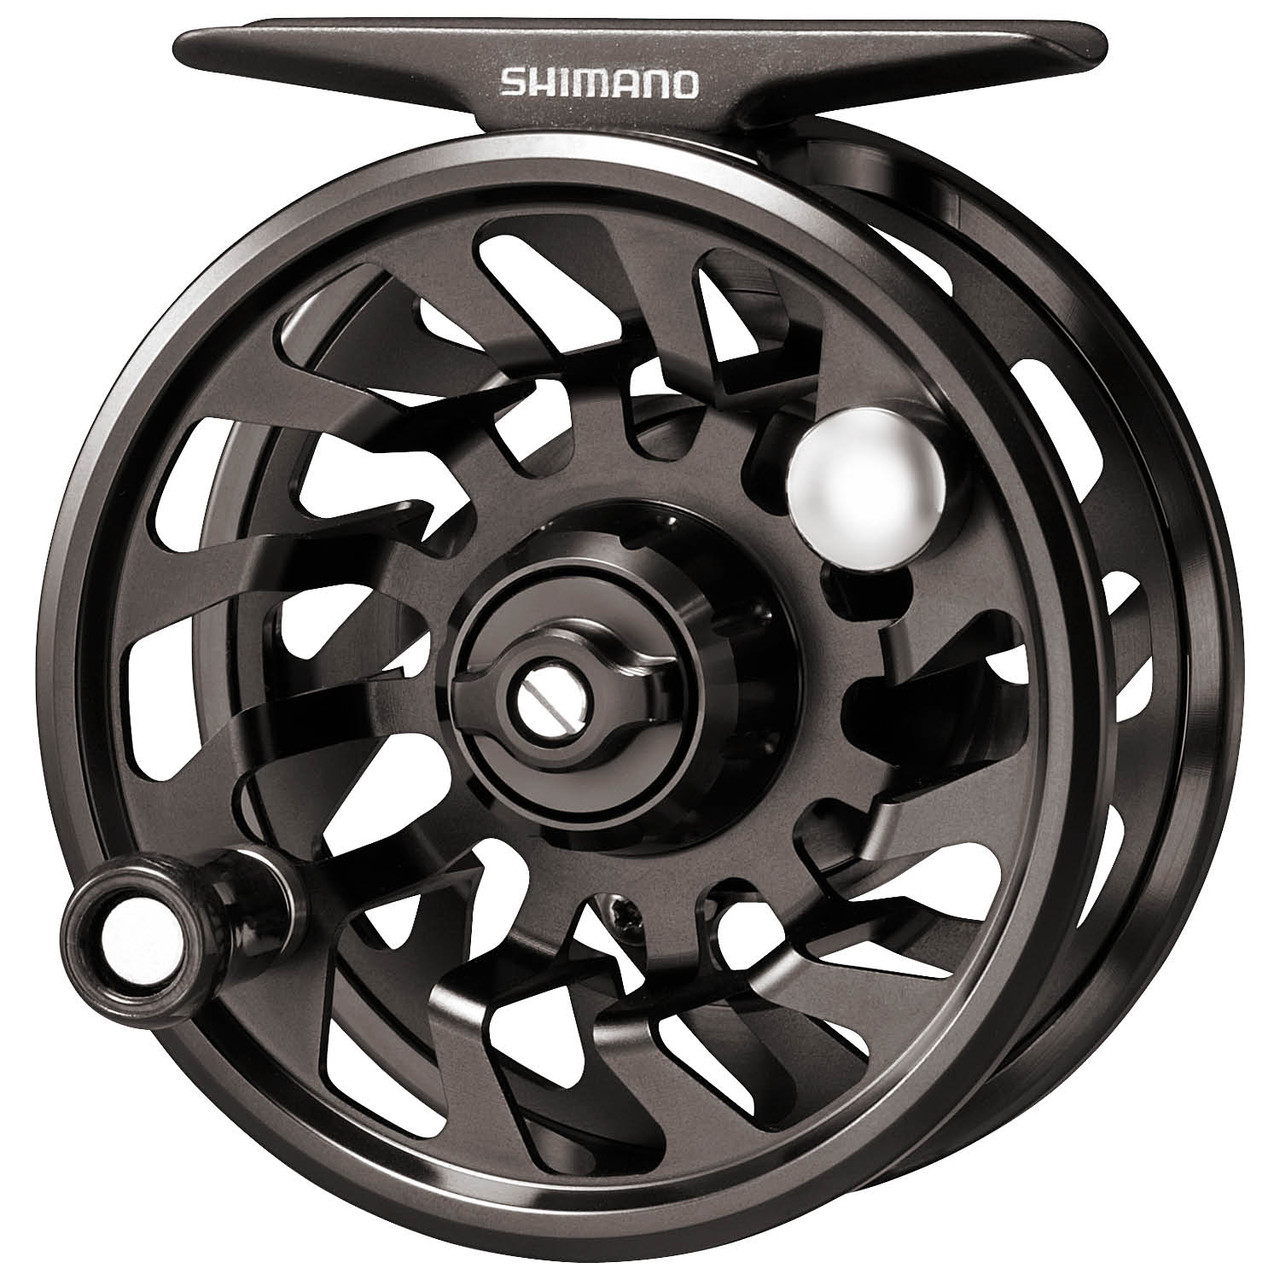 ASQUITH 7/8 FLY REEL